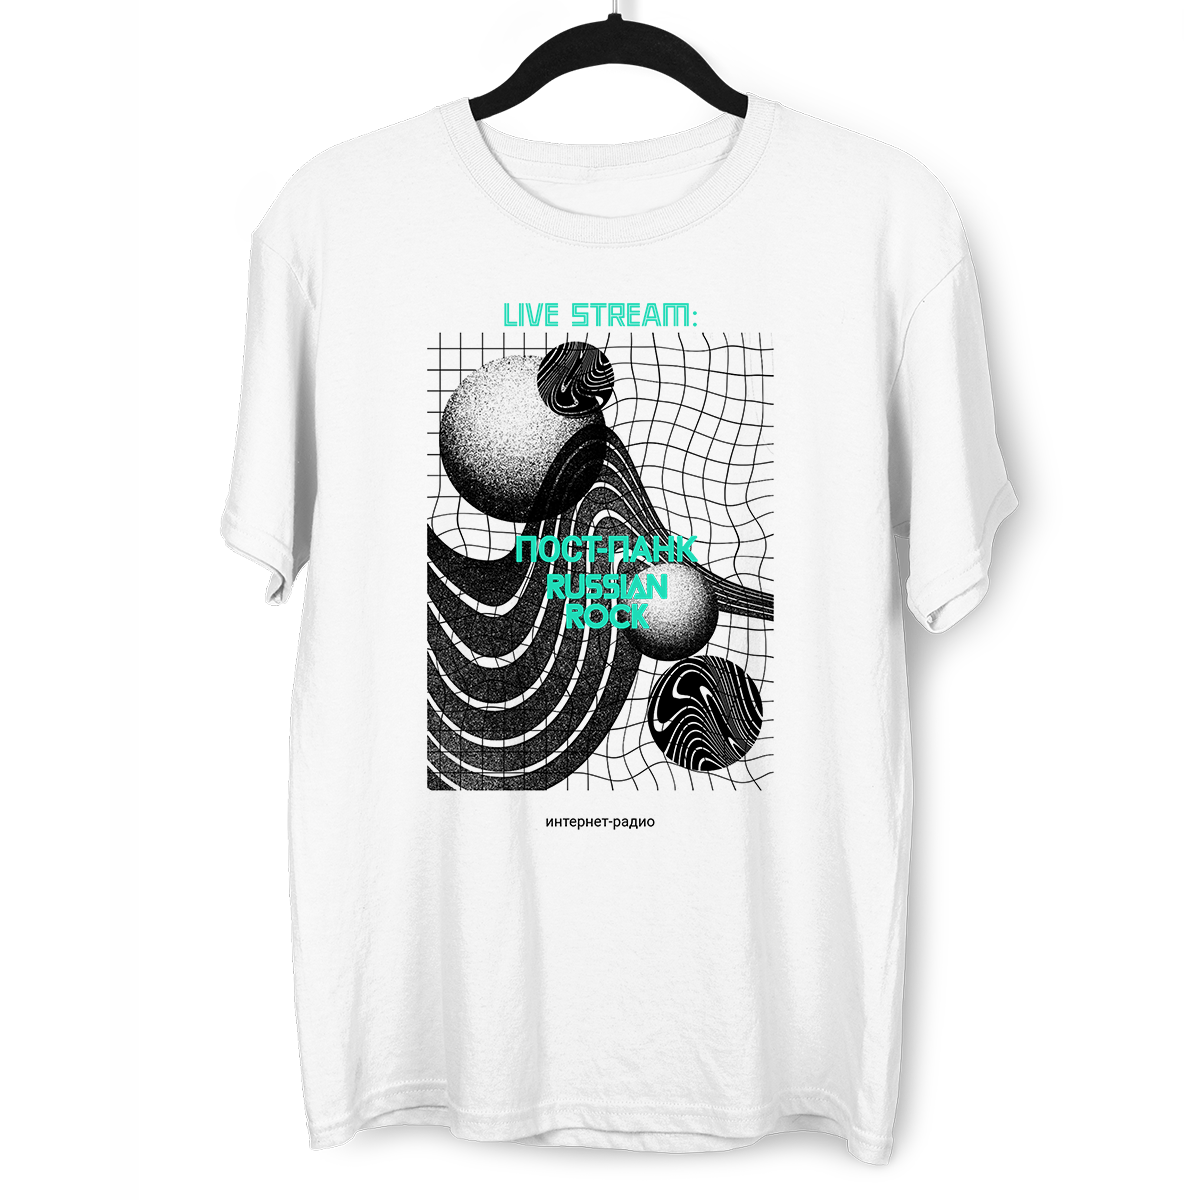 Live Stream-PostPunk-Russian Rock-Internet Radio Abstract Crew Neck White T-shirt